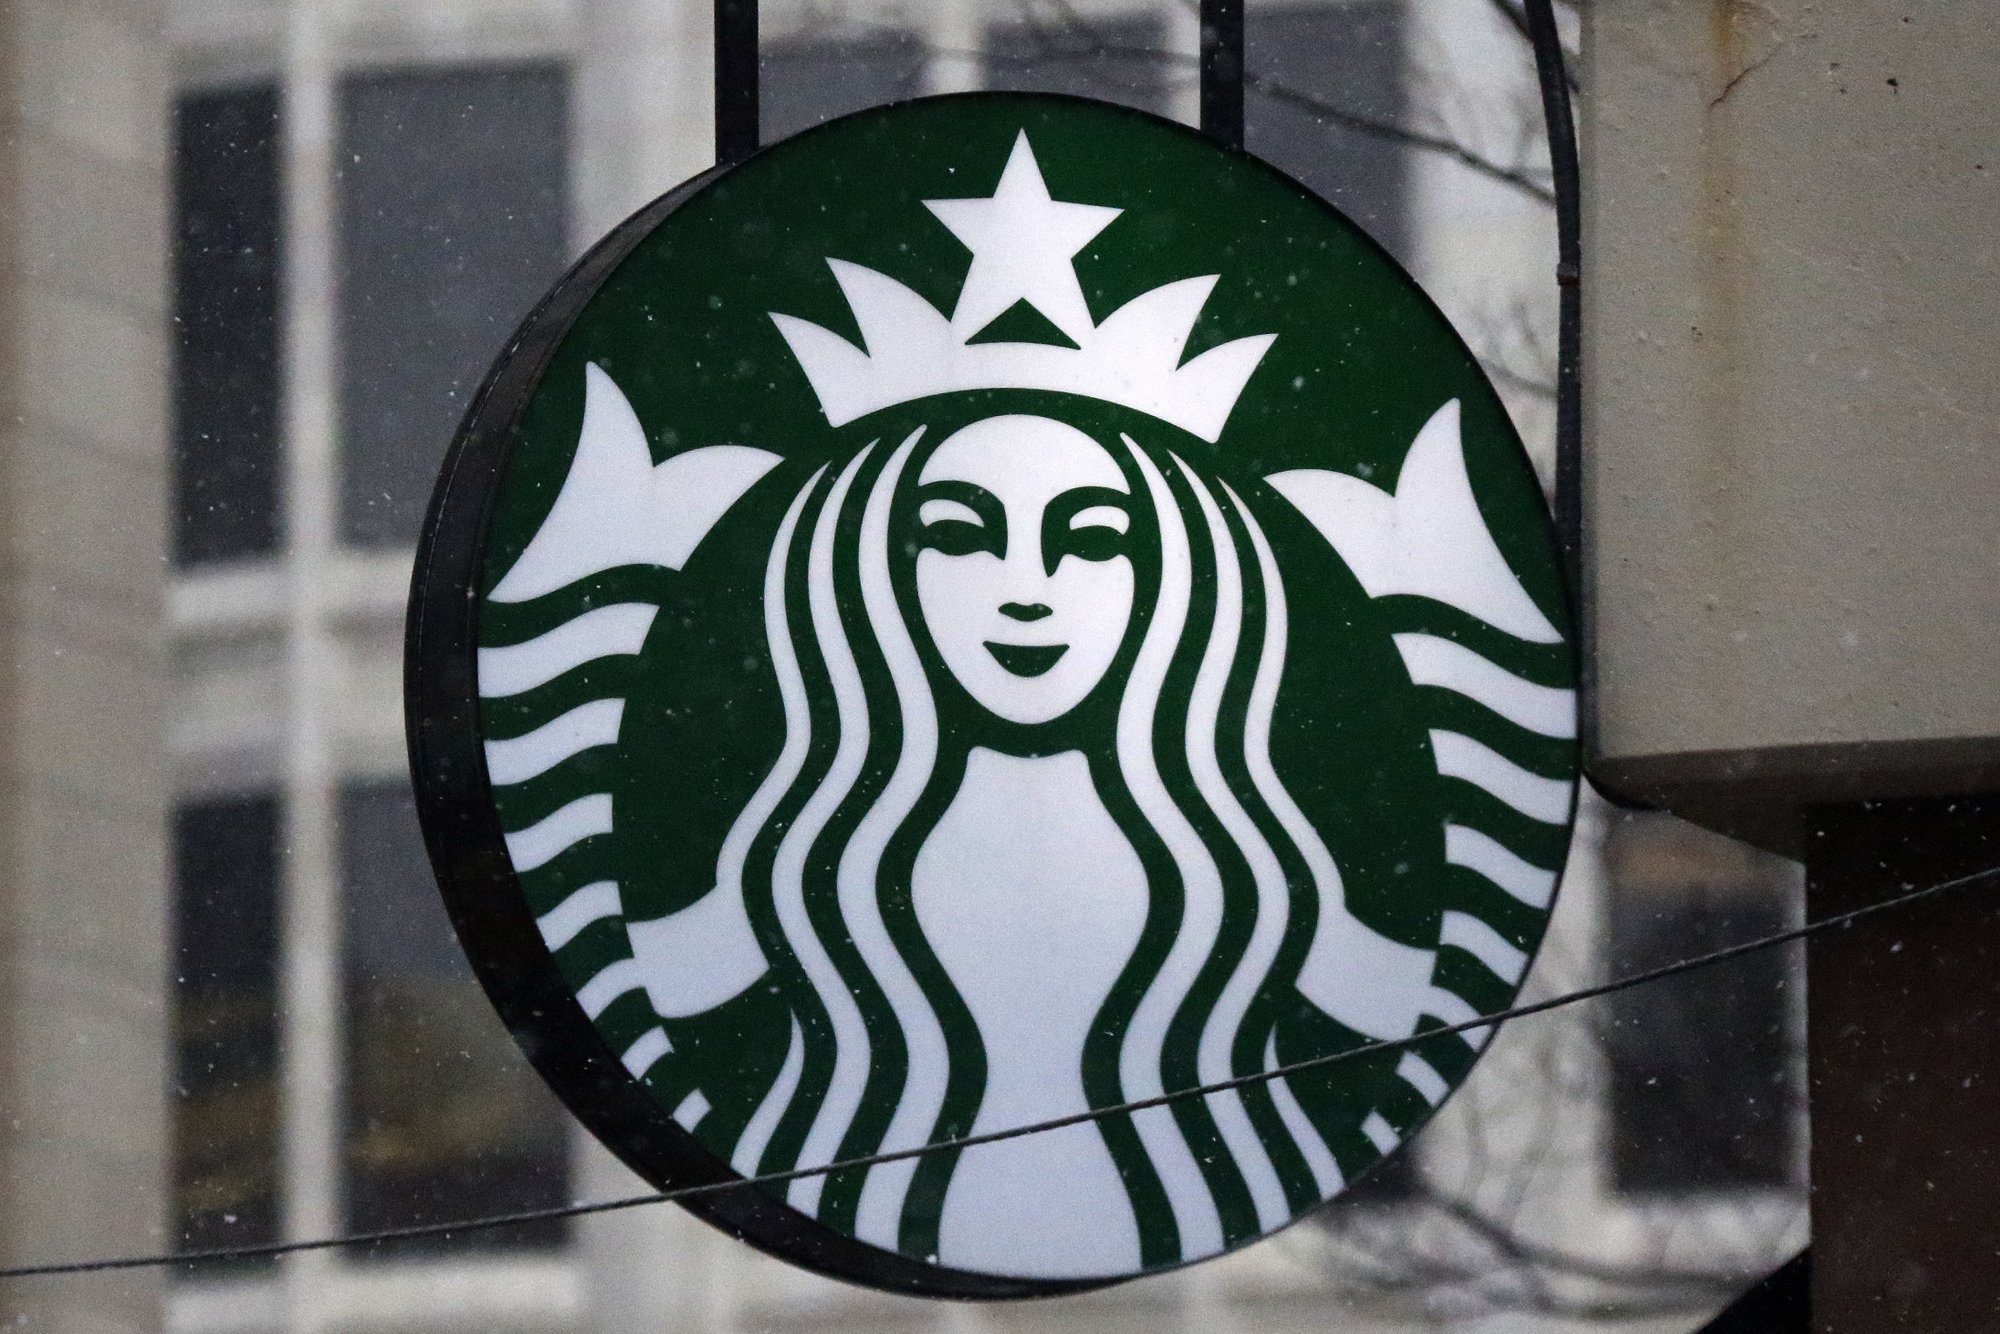 New Starbucks Policy No Purchase Needed To Sit In Cafes